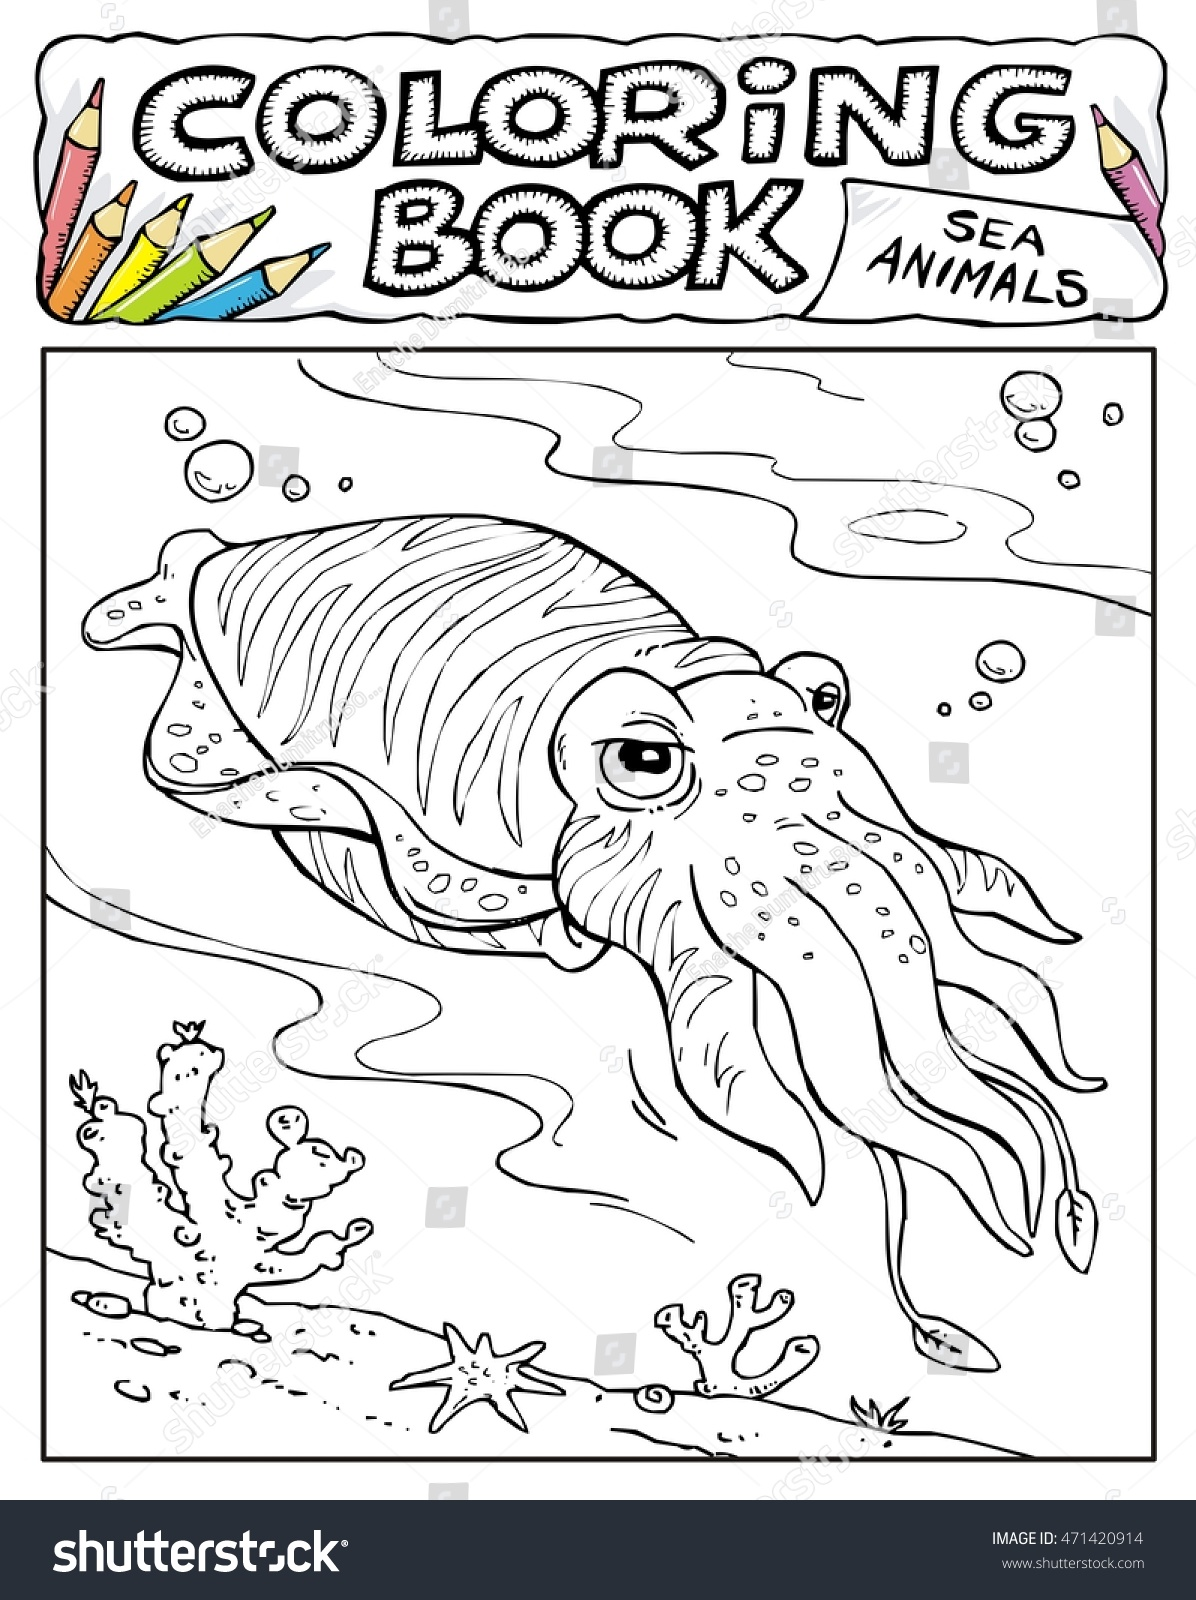 stock vector cuttlefish squid coloring book pages sea animals collection page no